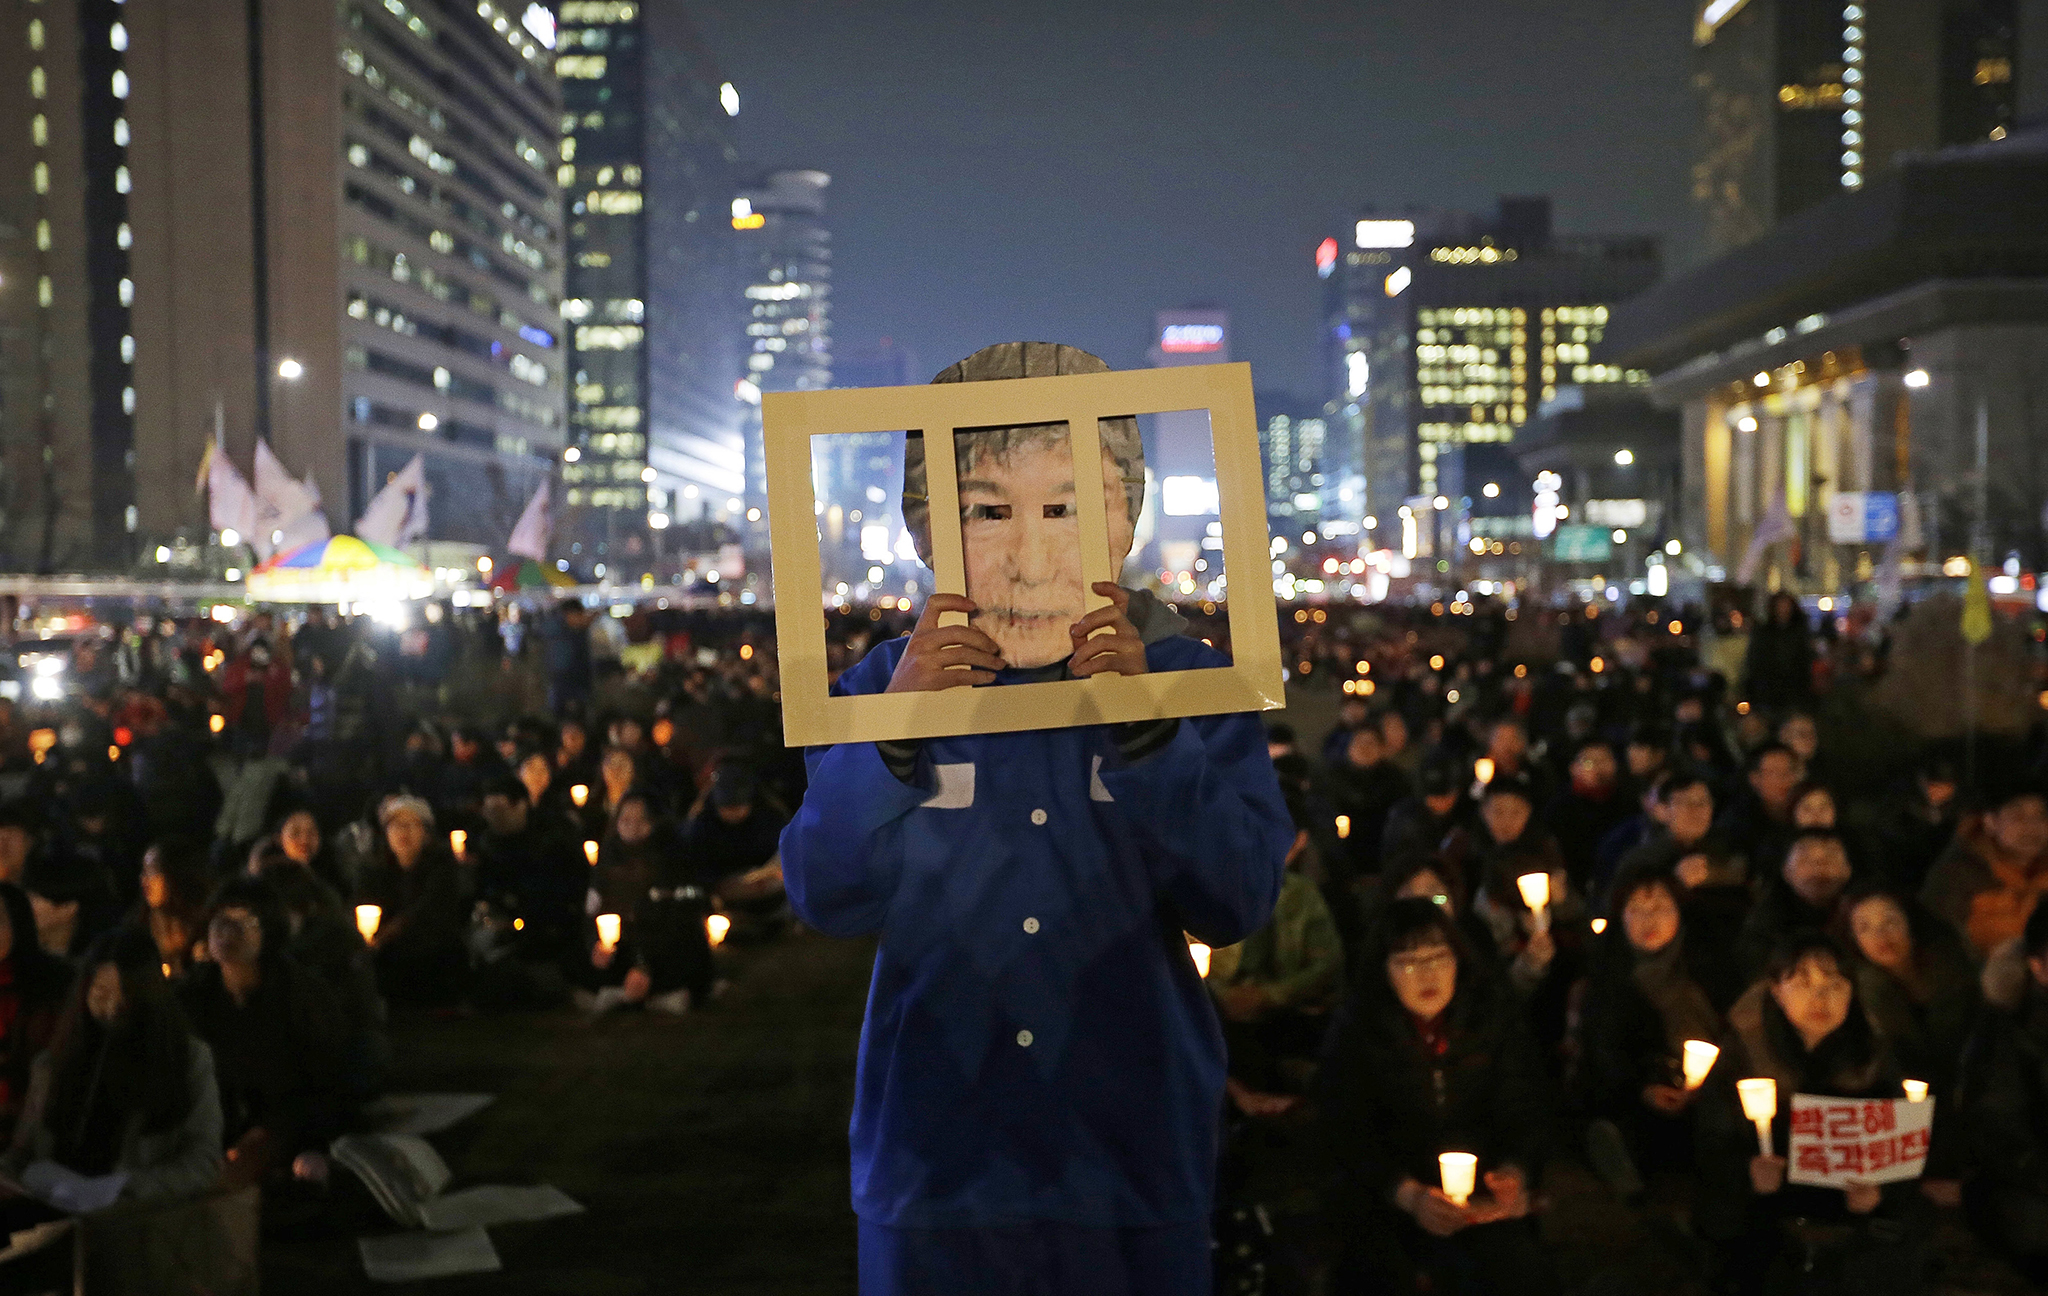 A protester wearing a mask of South Korean President Park Geun-hye performs during a rally calling for Park to step down in Seoul, South Korea, Wednesday, Nov. 30, 2016. South Korean President Park Geun-hye's conditional resignation offer appears to be causing cracks in what previously had been a strong push for her impeachment, with opponents now struggling to set a date for a vote to strip her of power. (AP Photo/Ahn Young-joon)